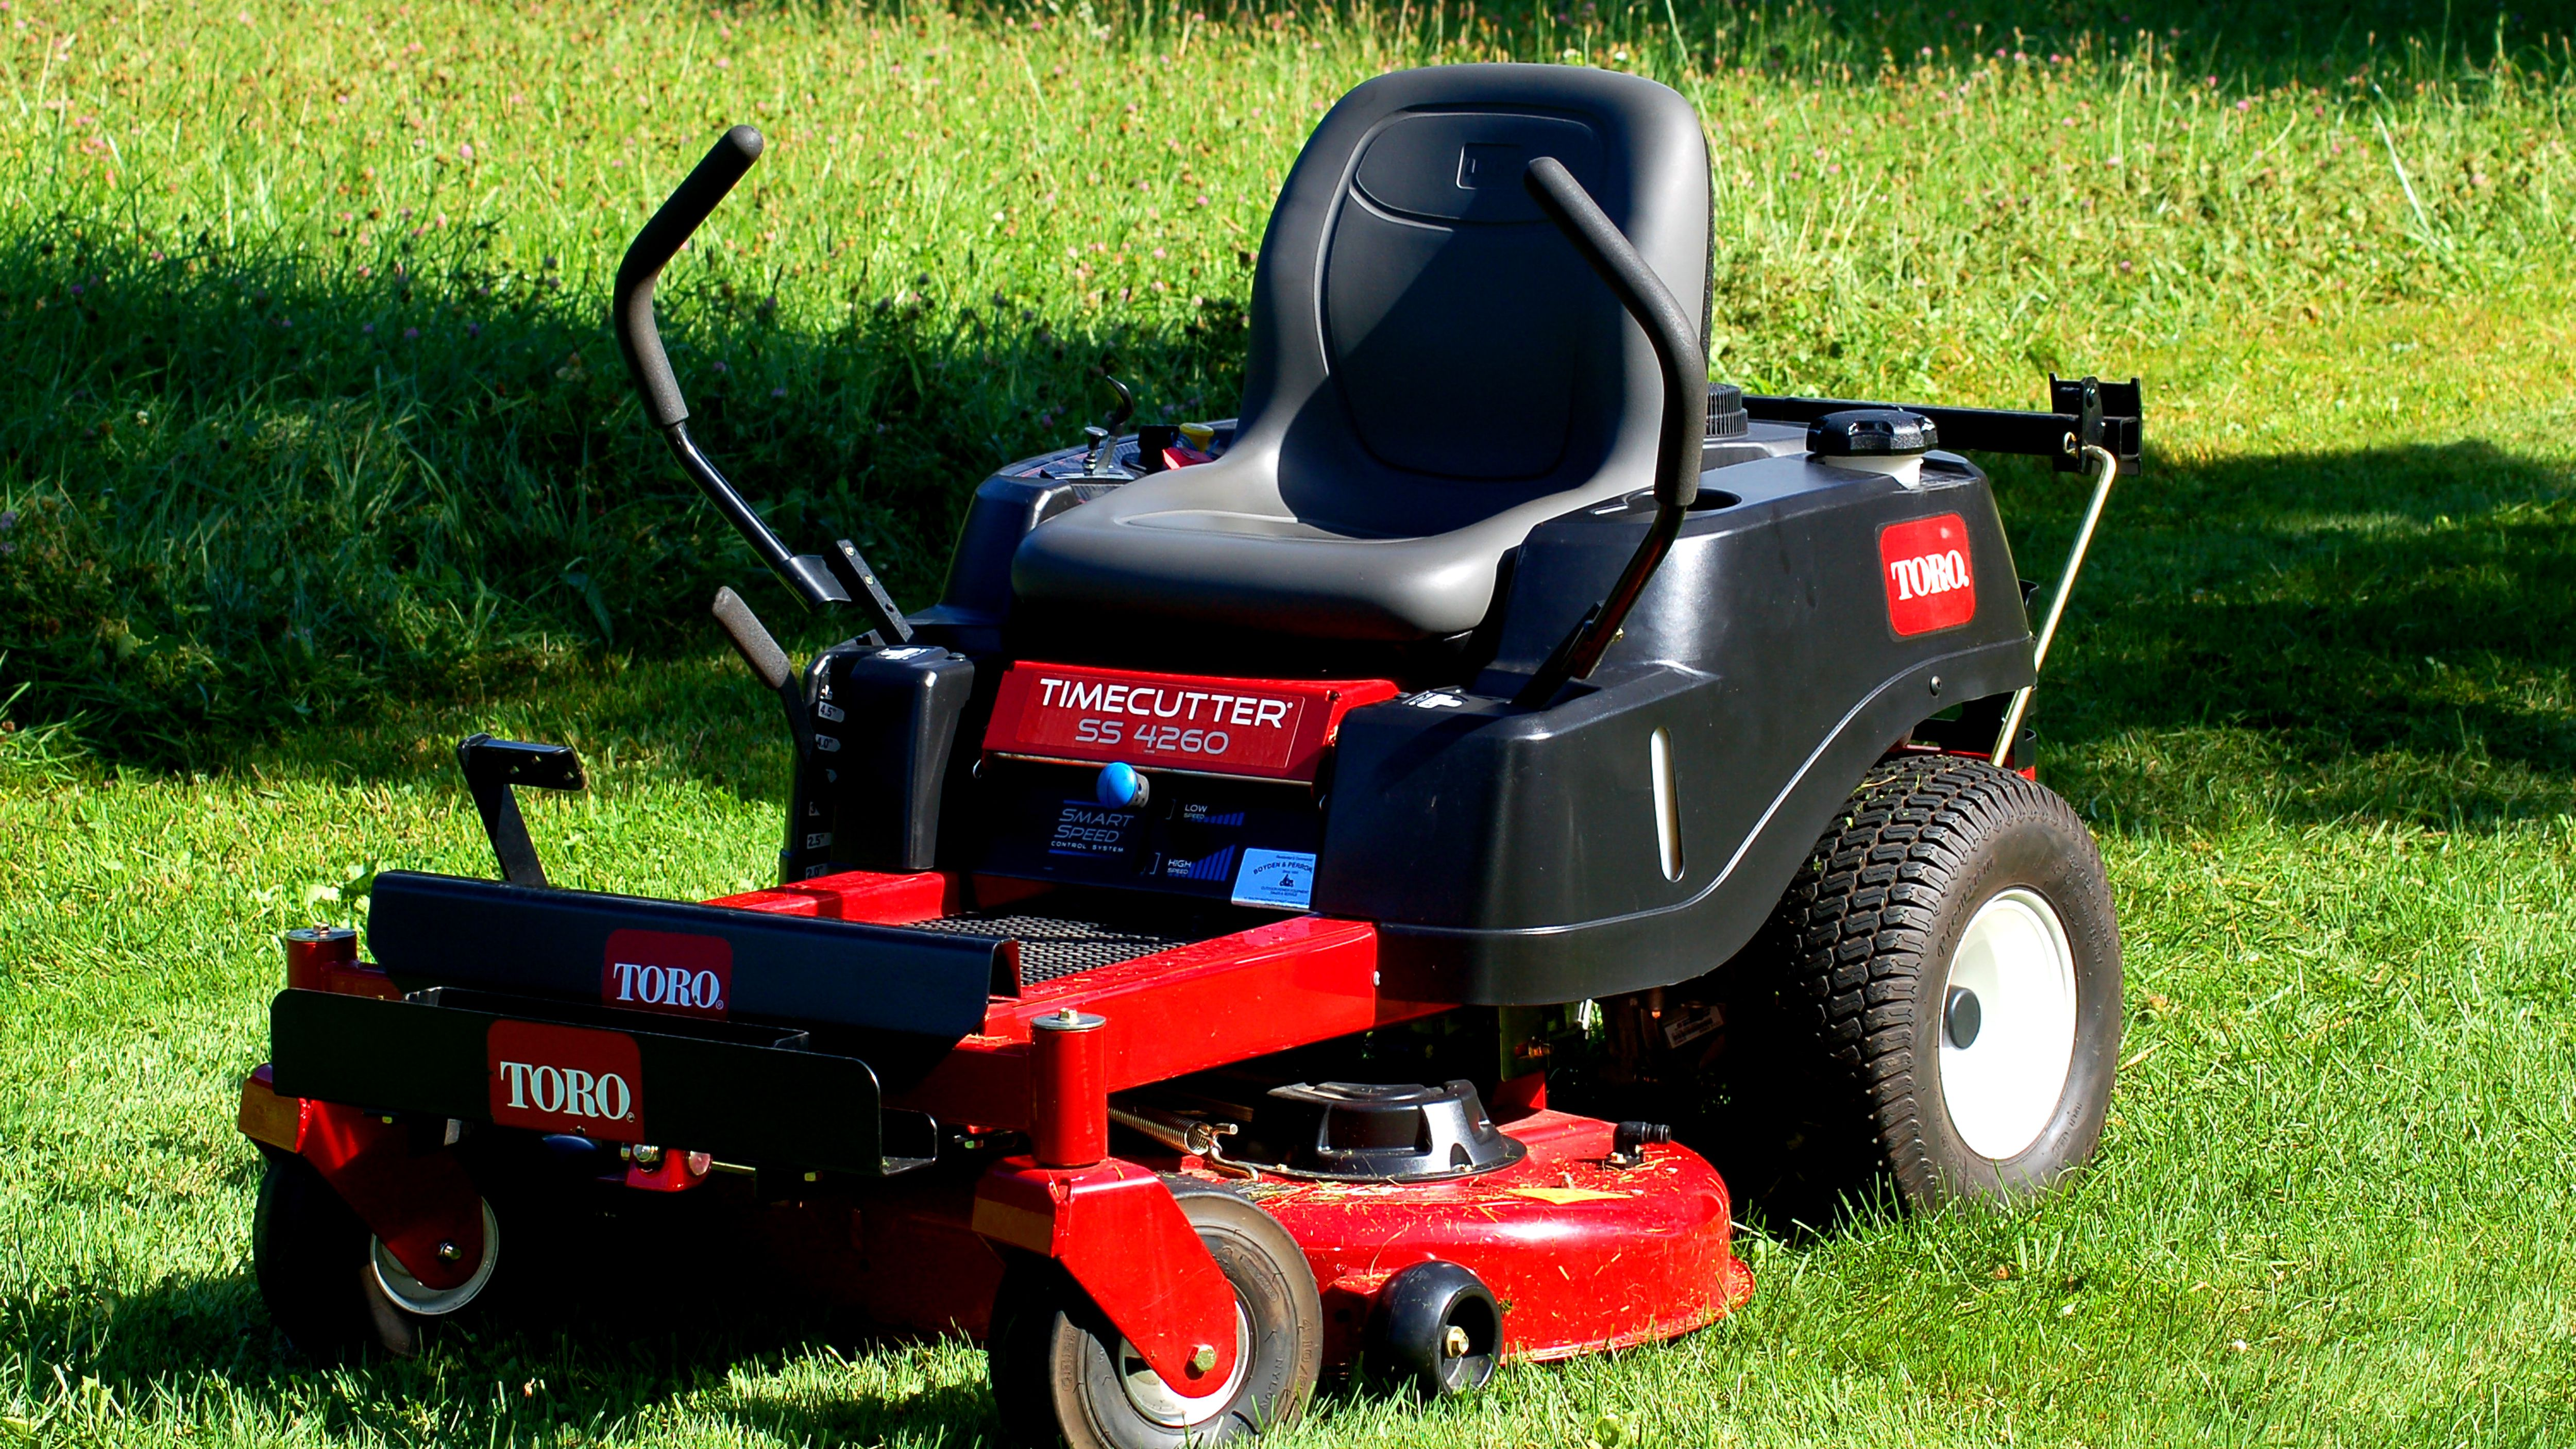 Riding Mowers vs. Lawn Tractors: What's the Difference